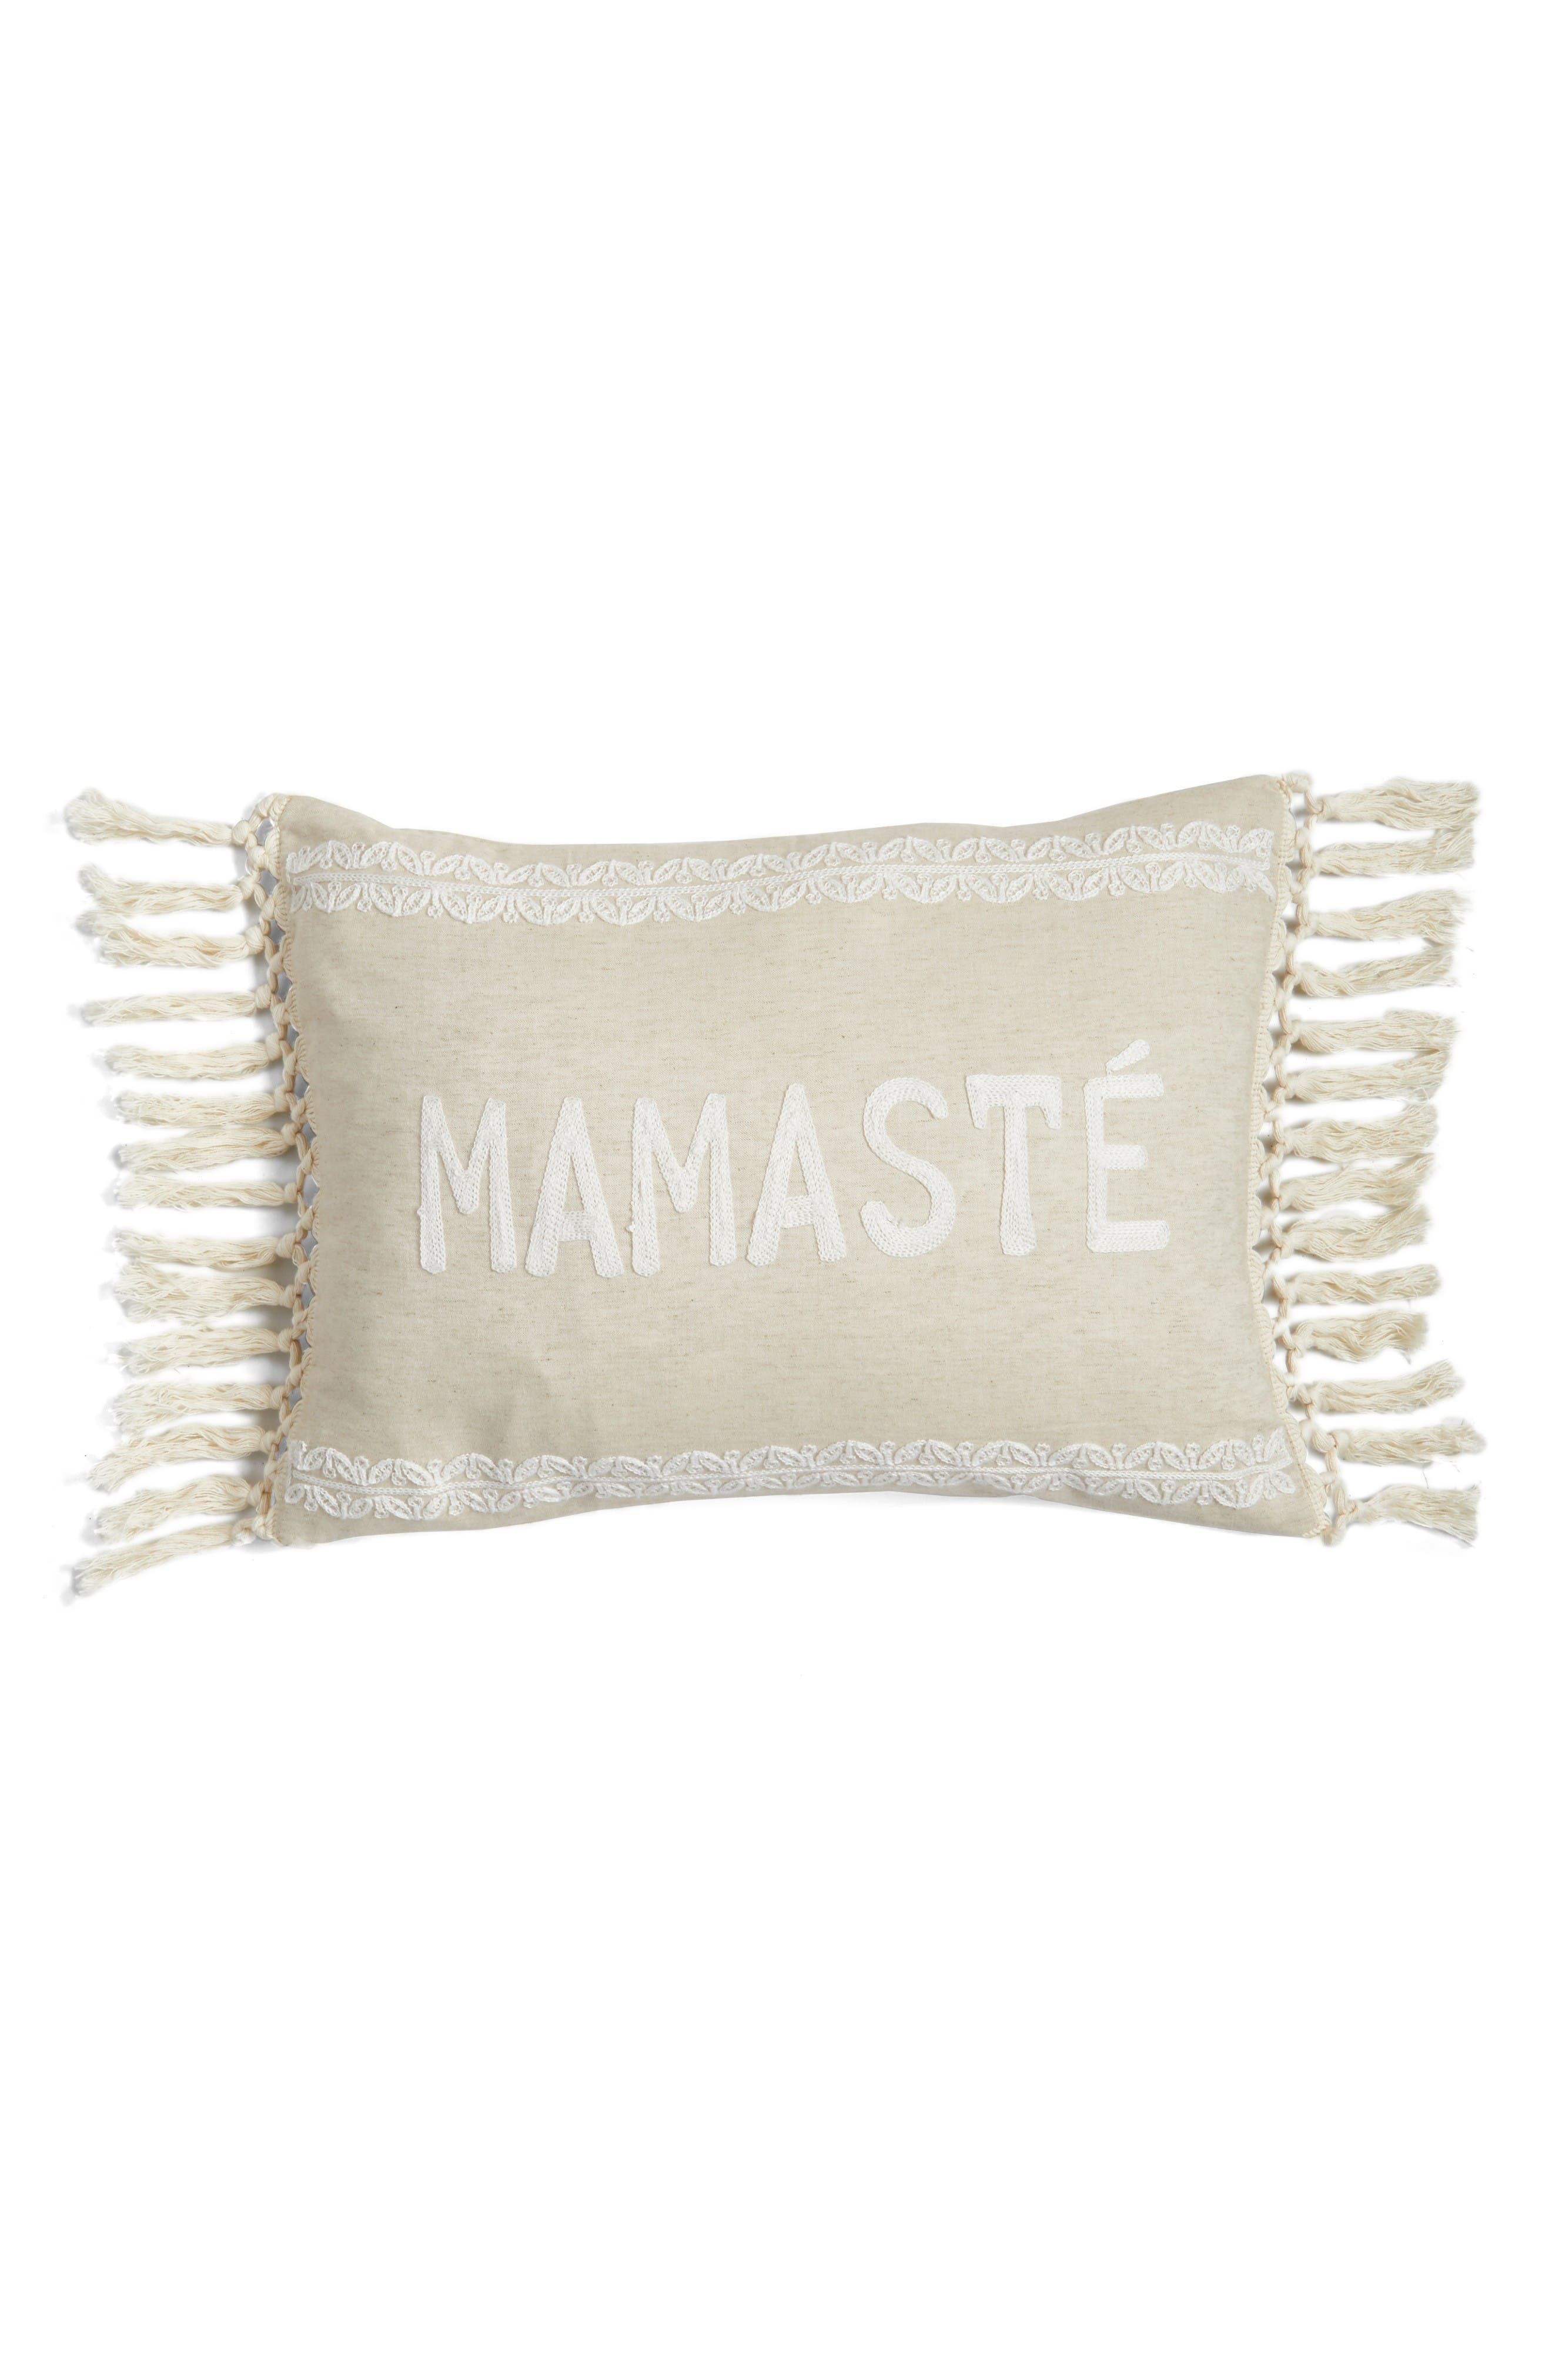 Main Image - Levtex Mamaste Accent Pillow